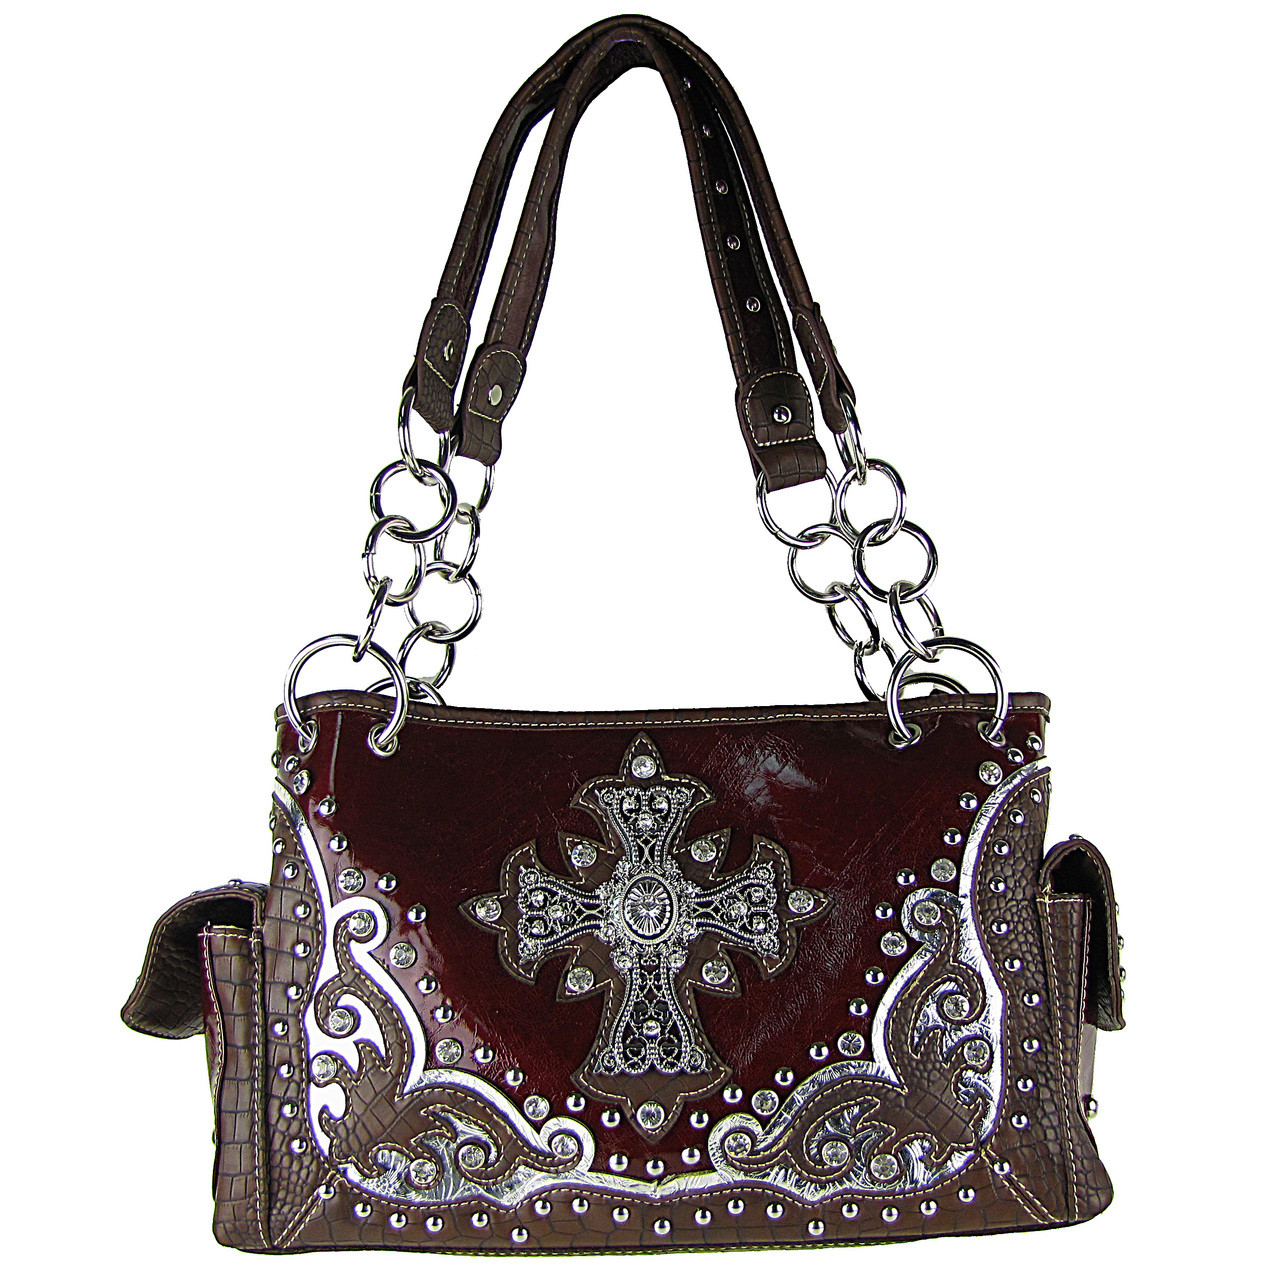 RED WESTERN STUDDED RHINESTONE CROSS SHOULDER HANDBAG HB1-CHF0032RED